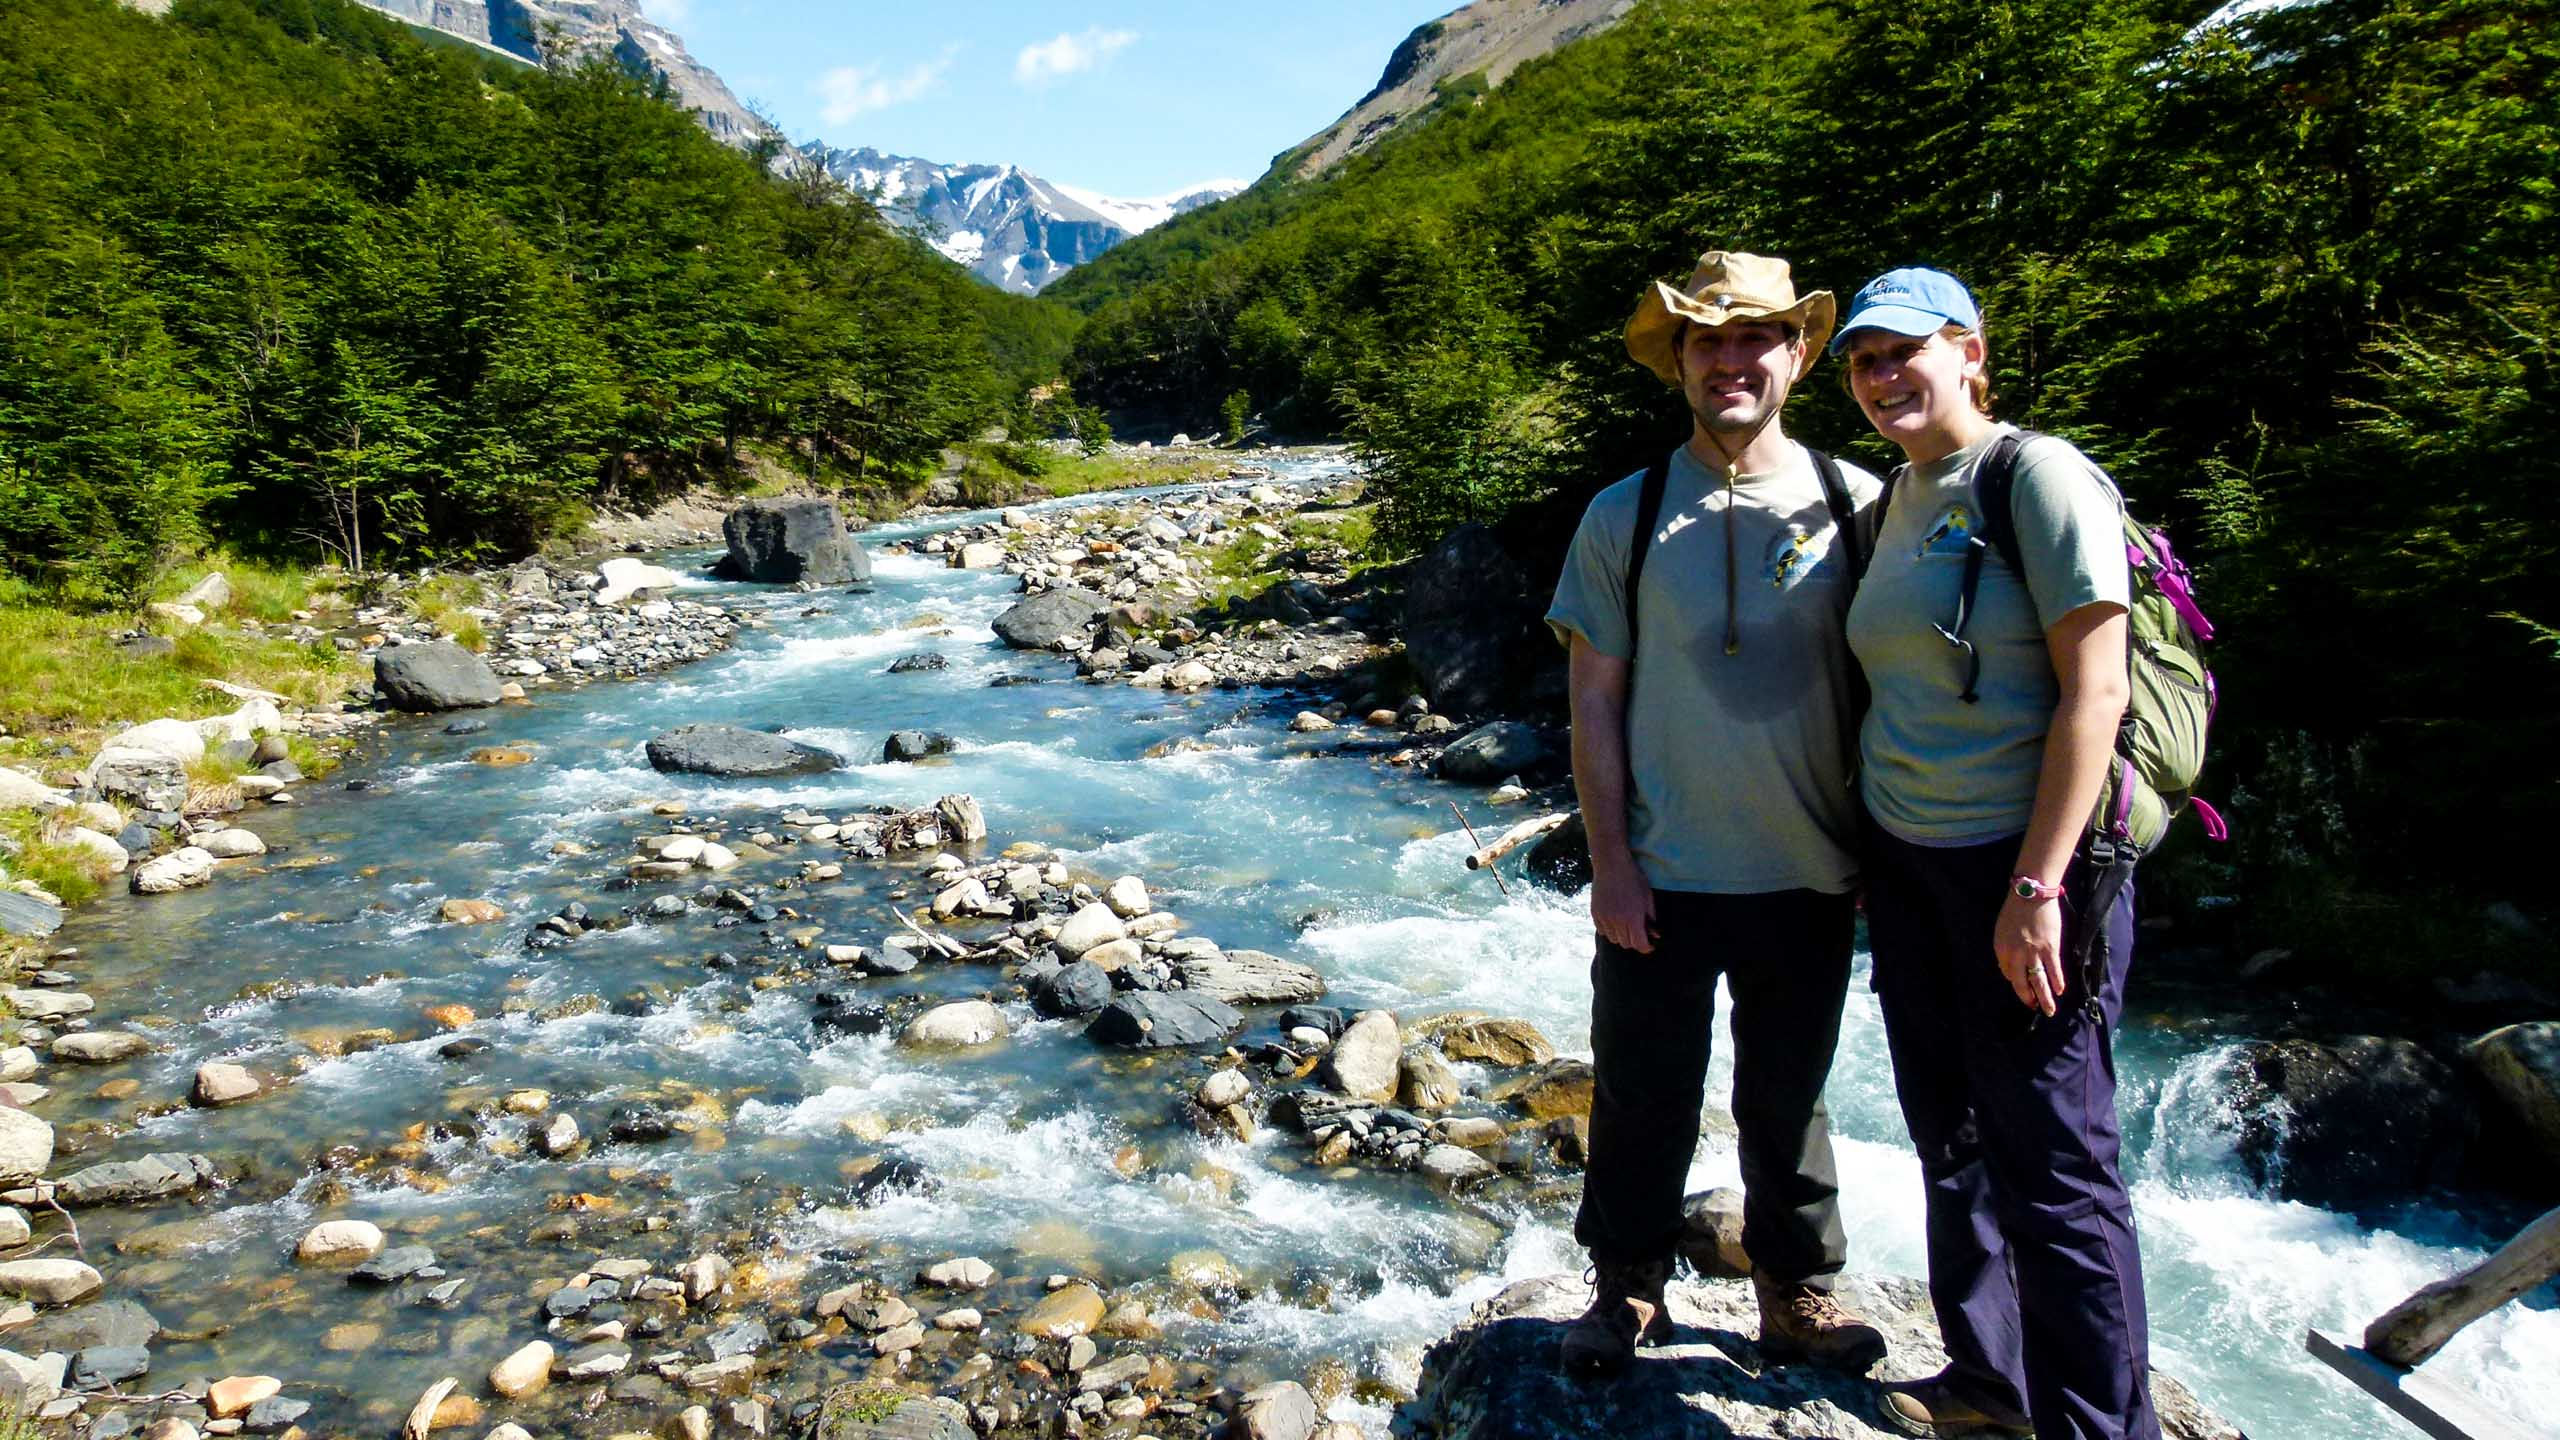 Hikers stand in Chile stream